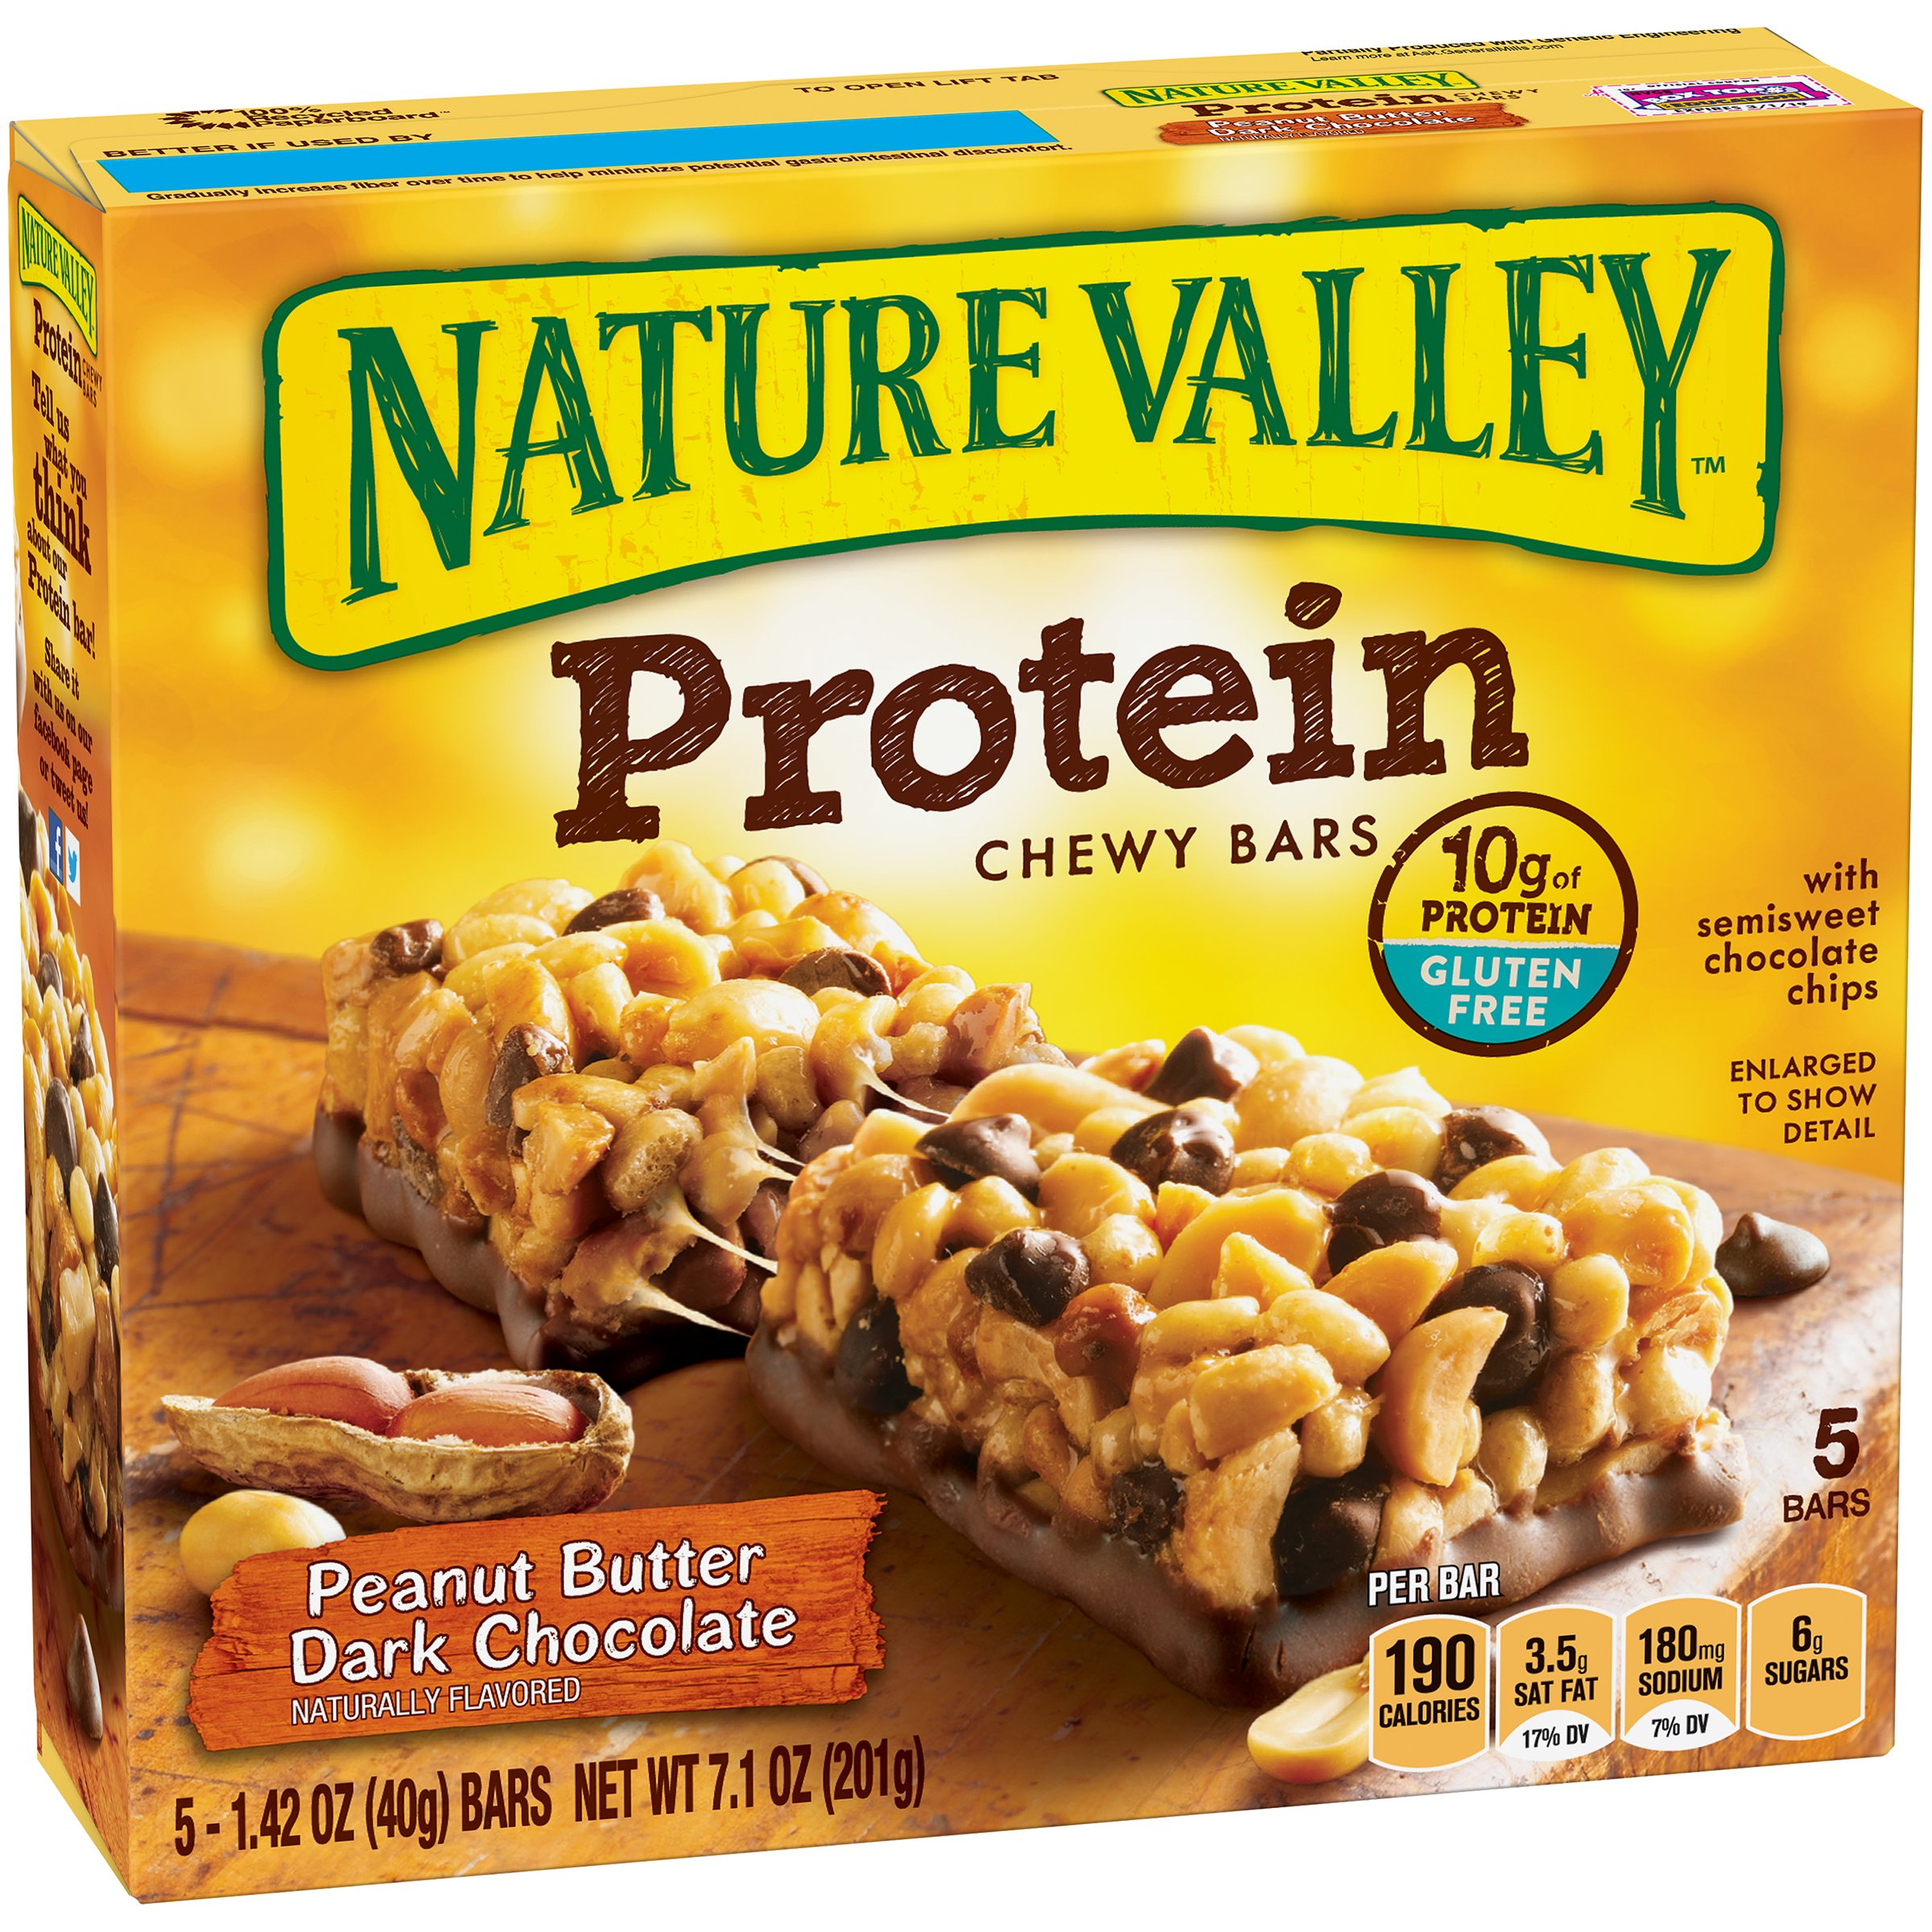 Nature Valley Chewy Granola Bar, Protein, Gluten Free, Peanut Butter Dark Chocolate, 5 Bars, 1.42 oz (Pack of 4)